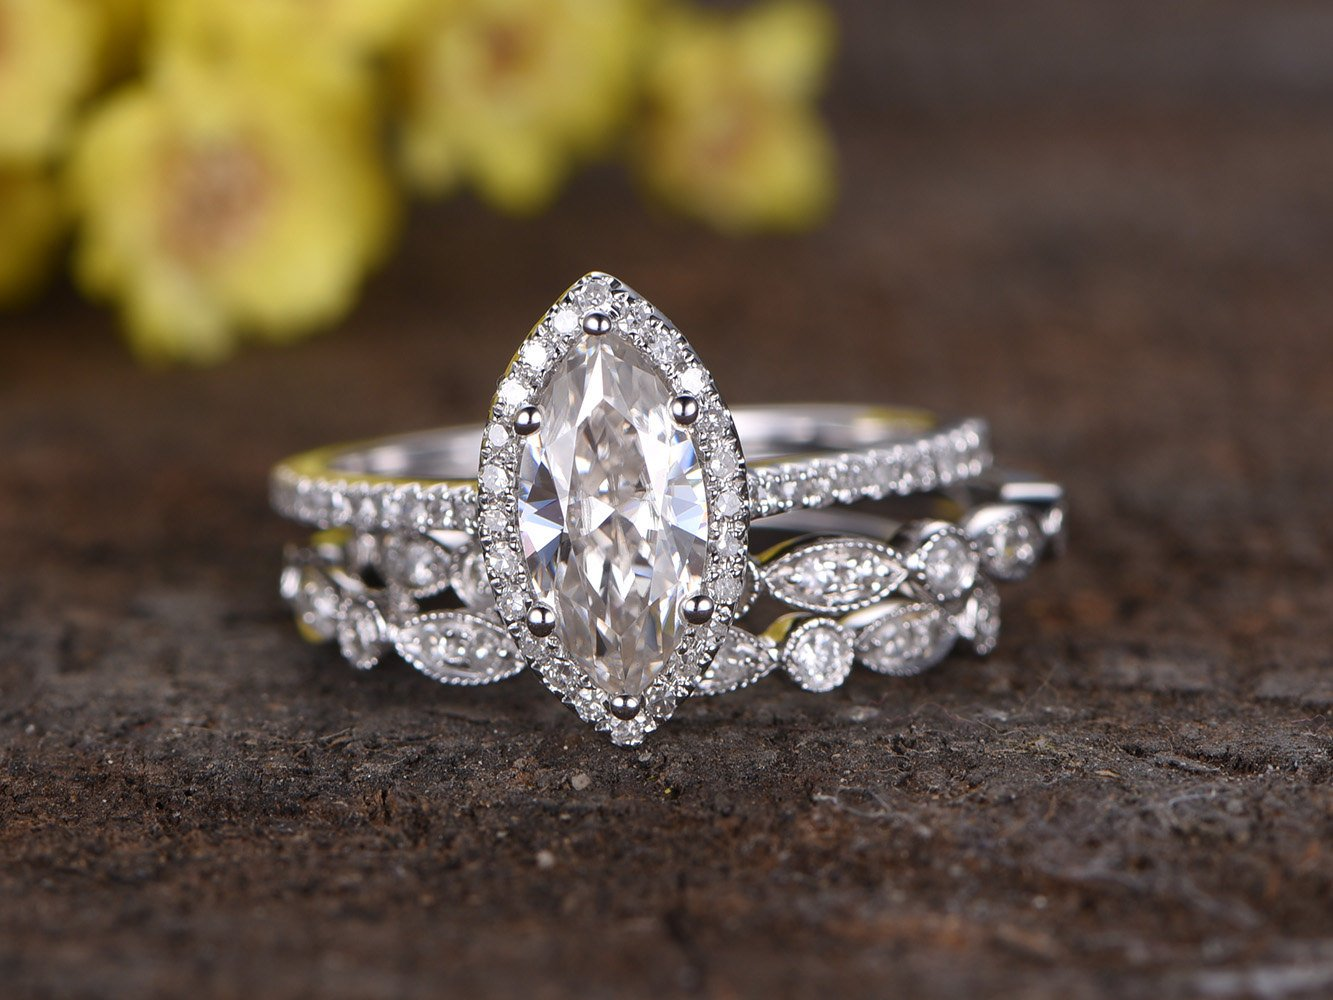 5x10mm Marquise Cut Forever Classic Moissanite Engagement